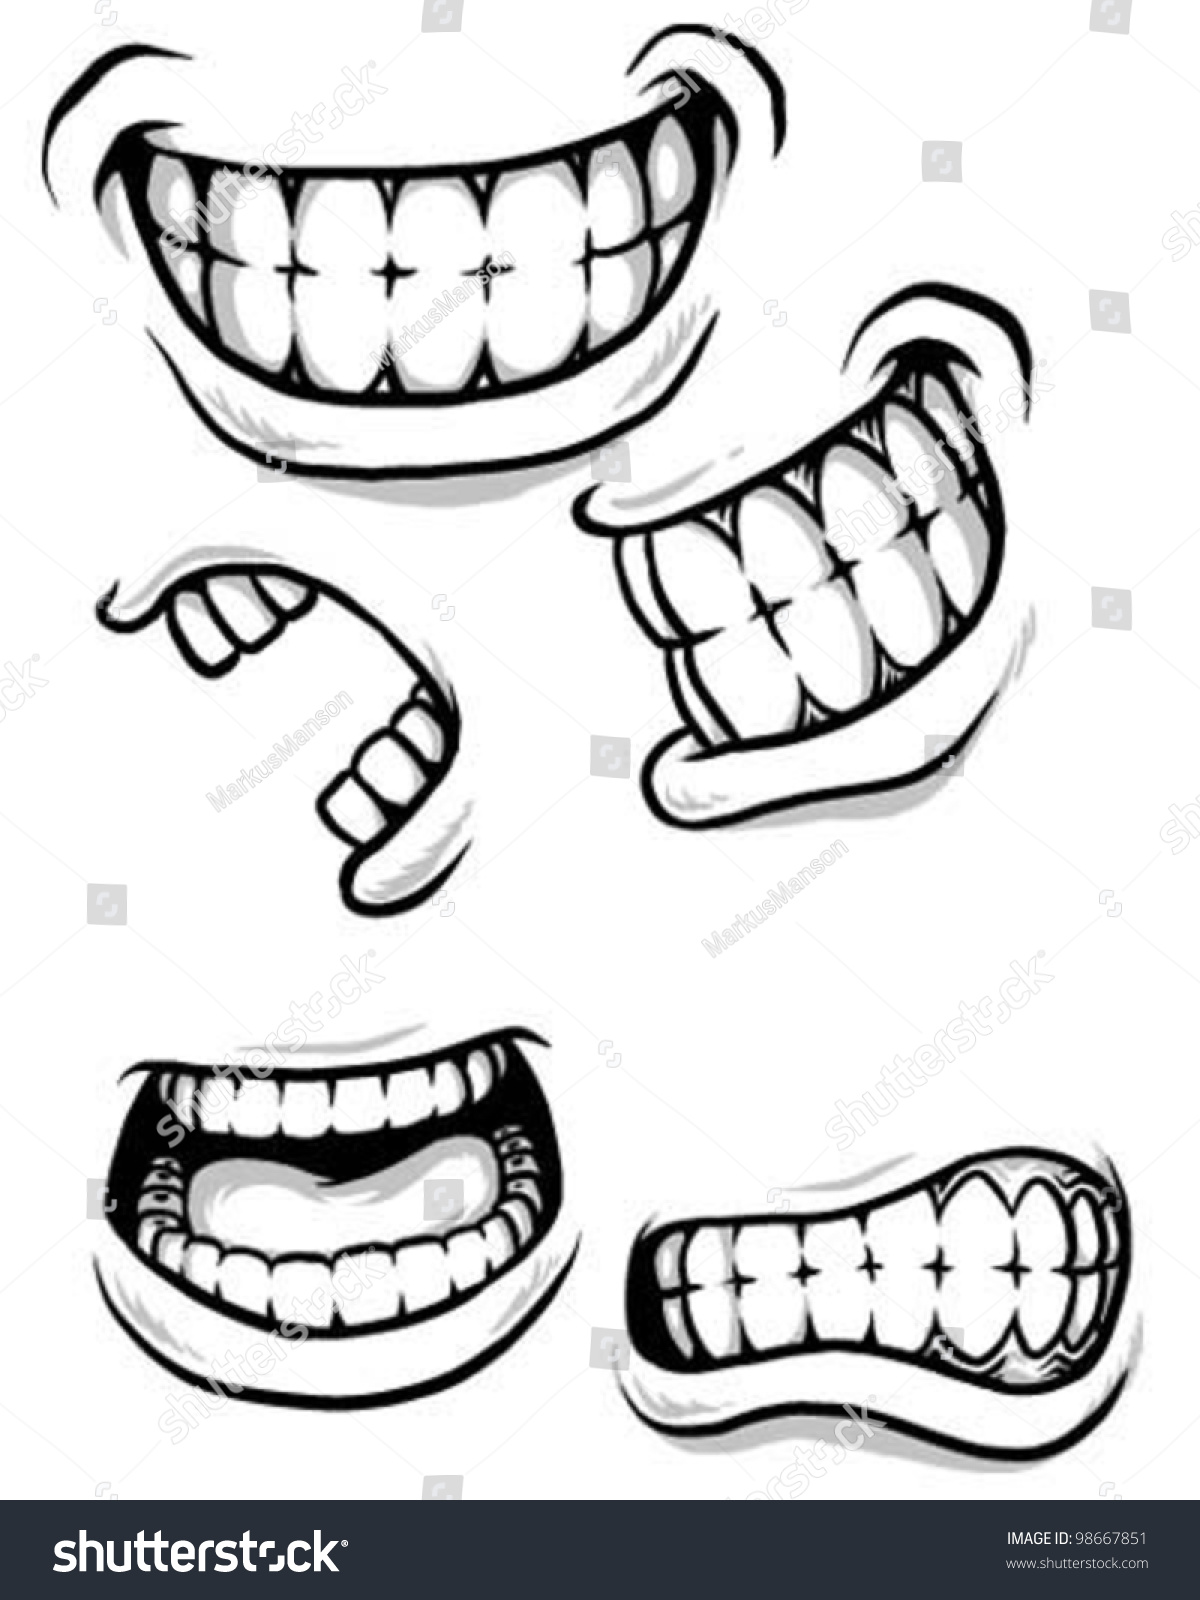 how to draw stylized mouth